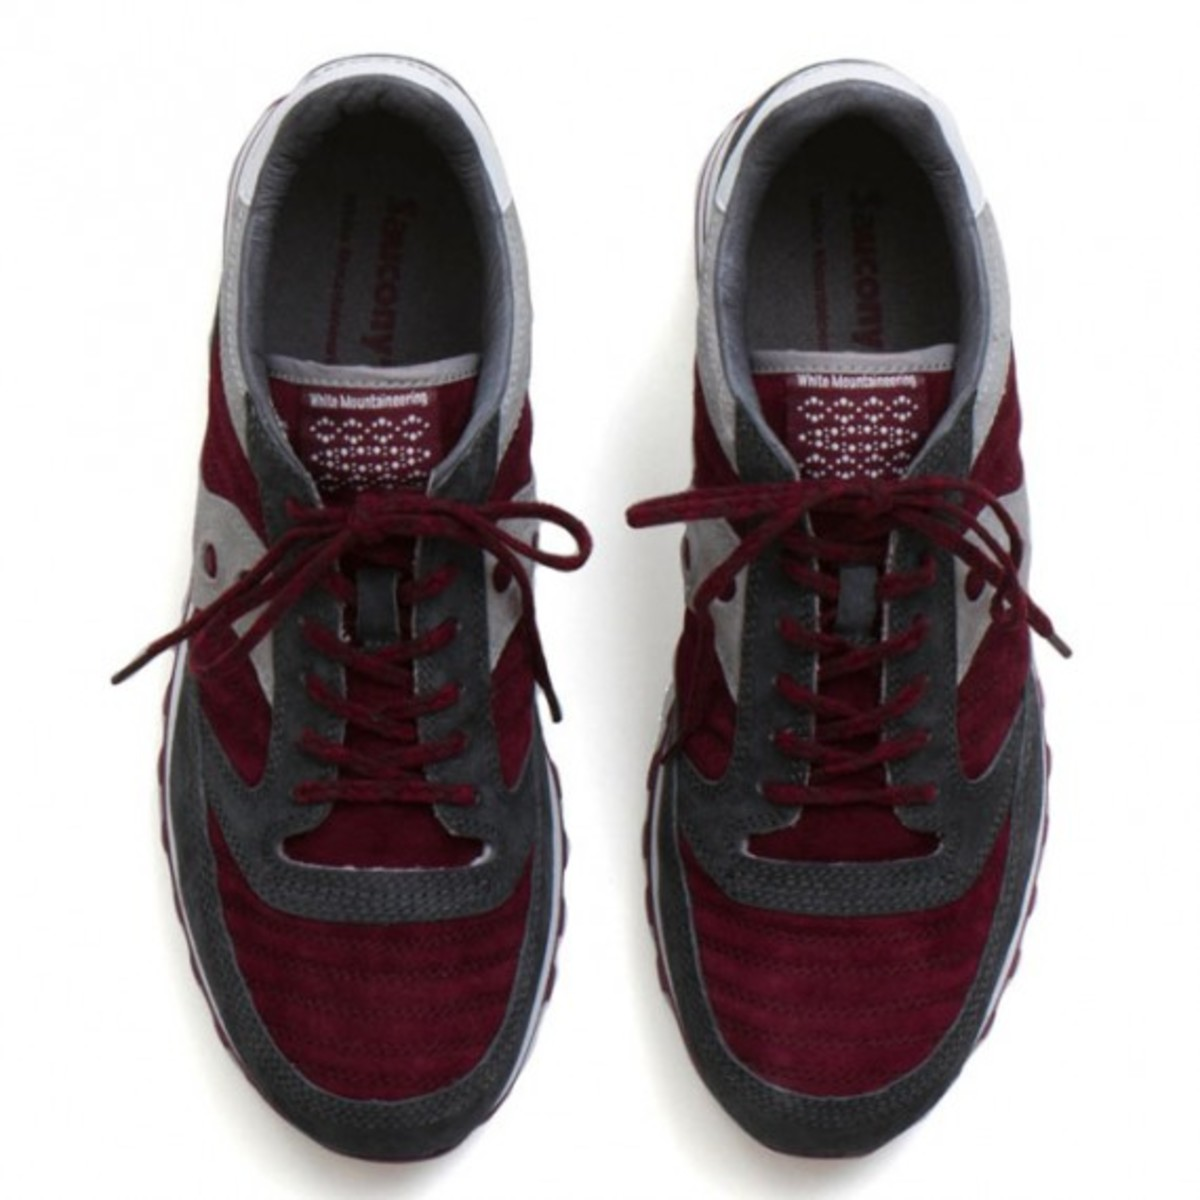 white-mountaineering-fall-winter-2012-footwear-collection-14